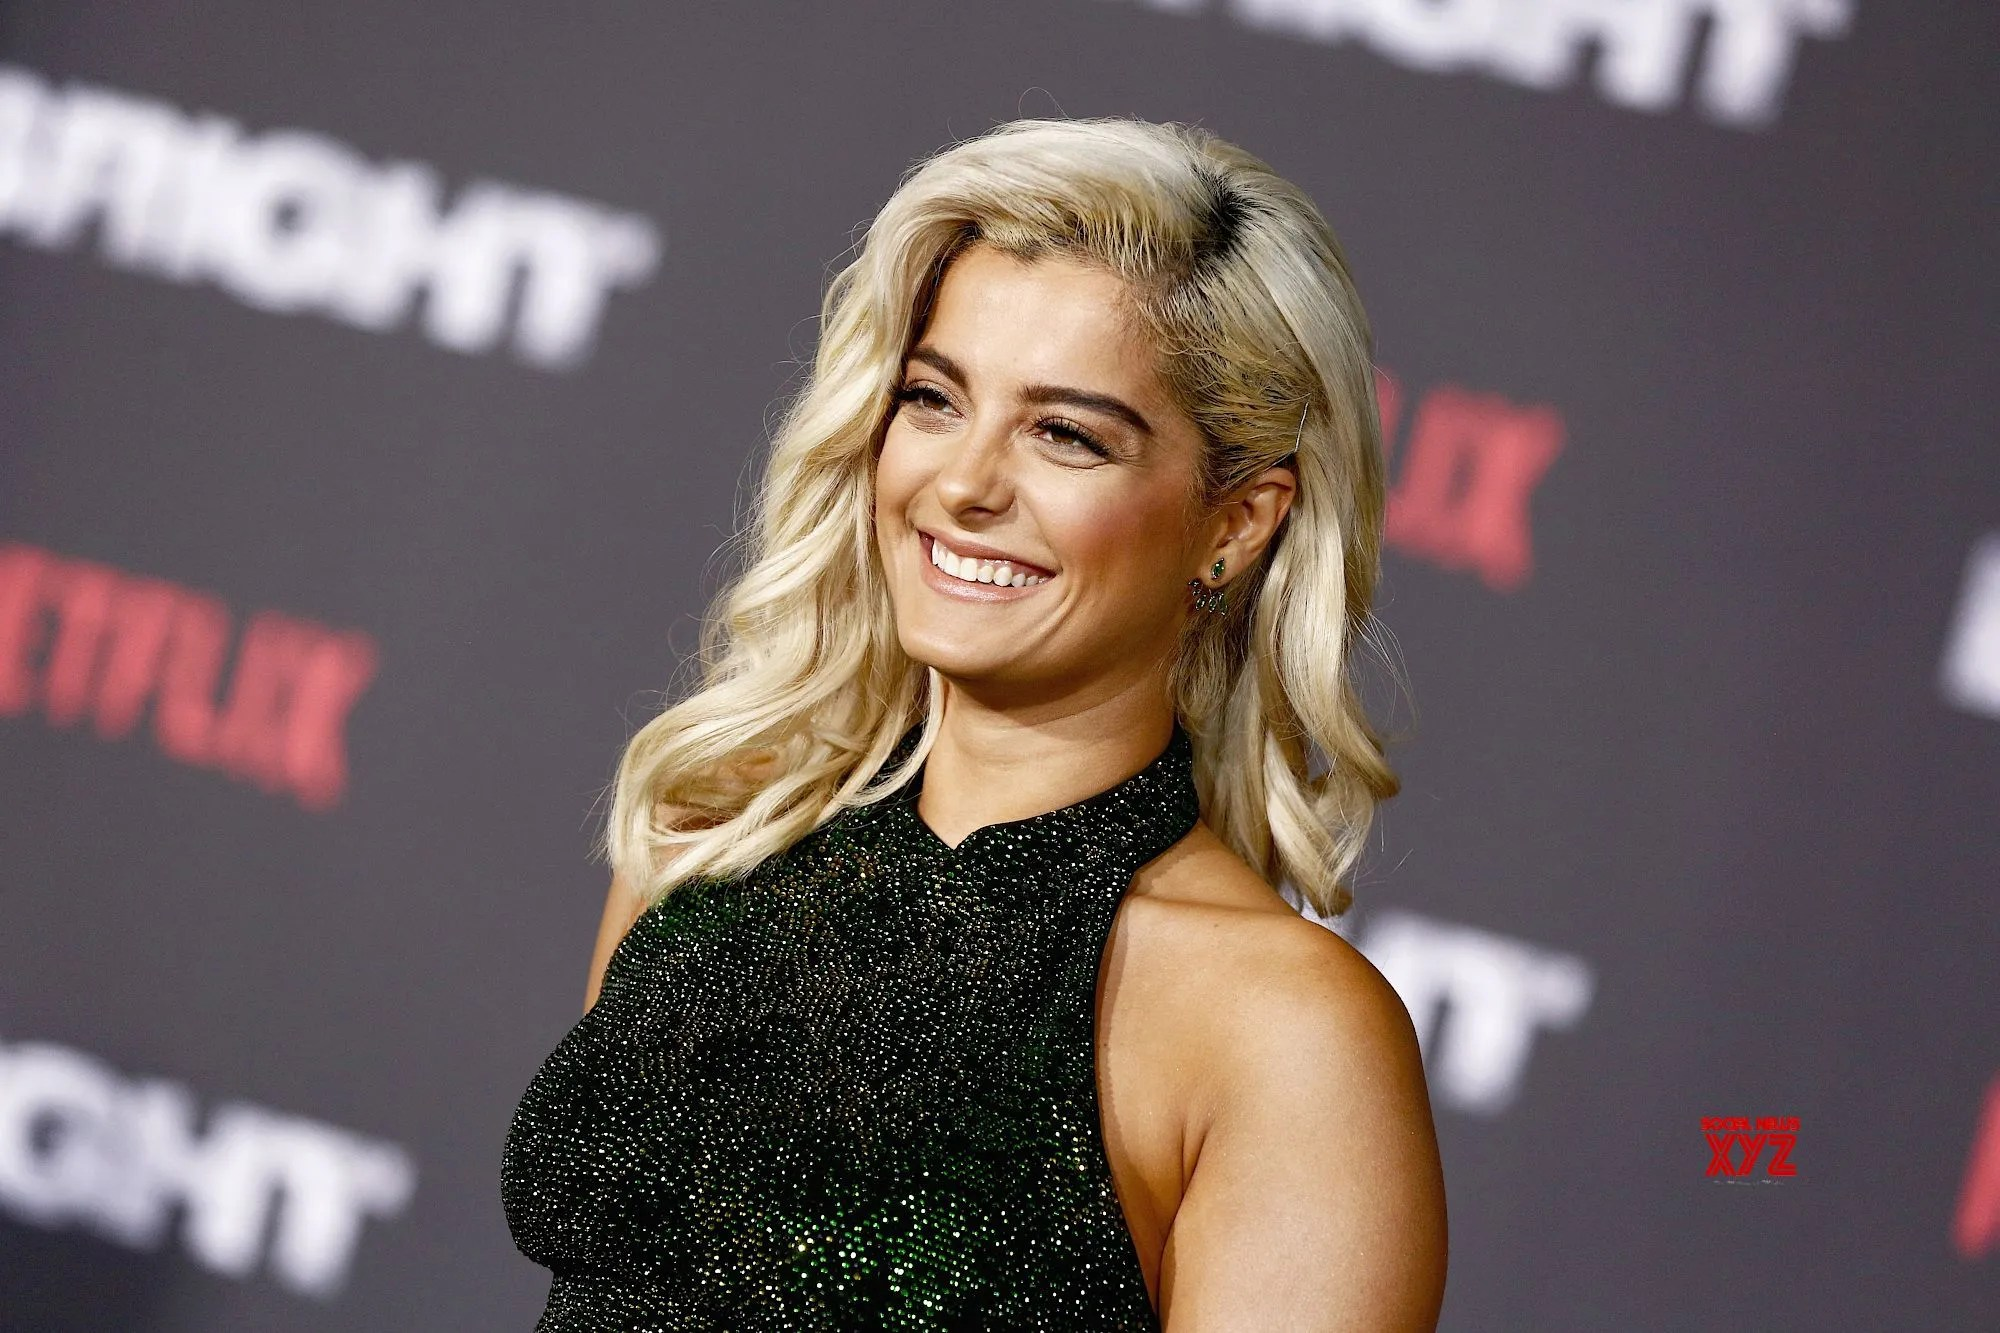 Bebe Rexha attends the LA Premiere of Netflix Films 'BRIGHT' on December 13, 2017 in Los Angeles, California.